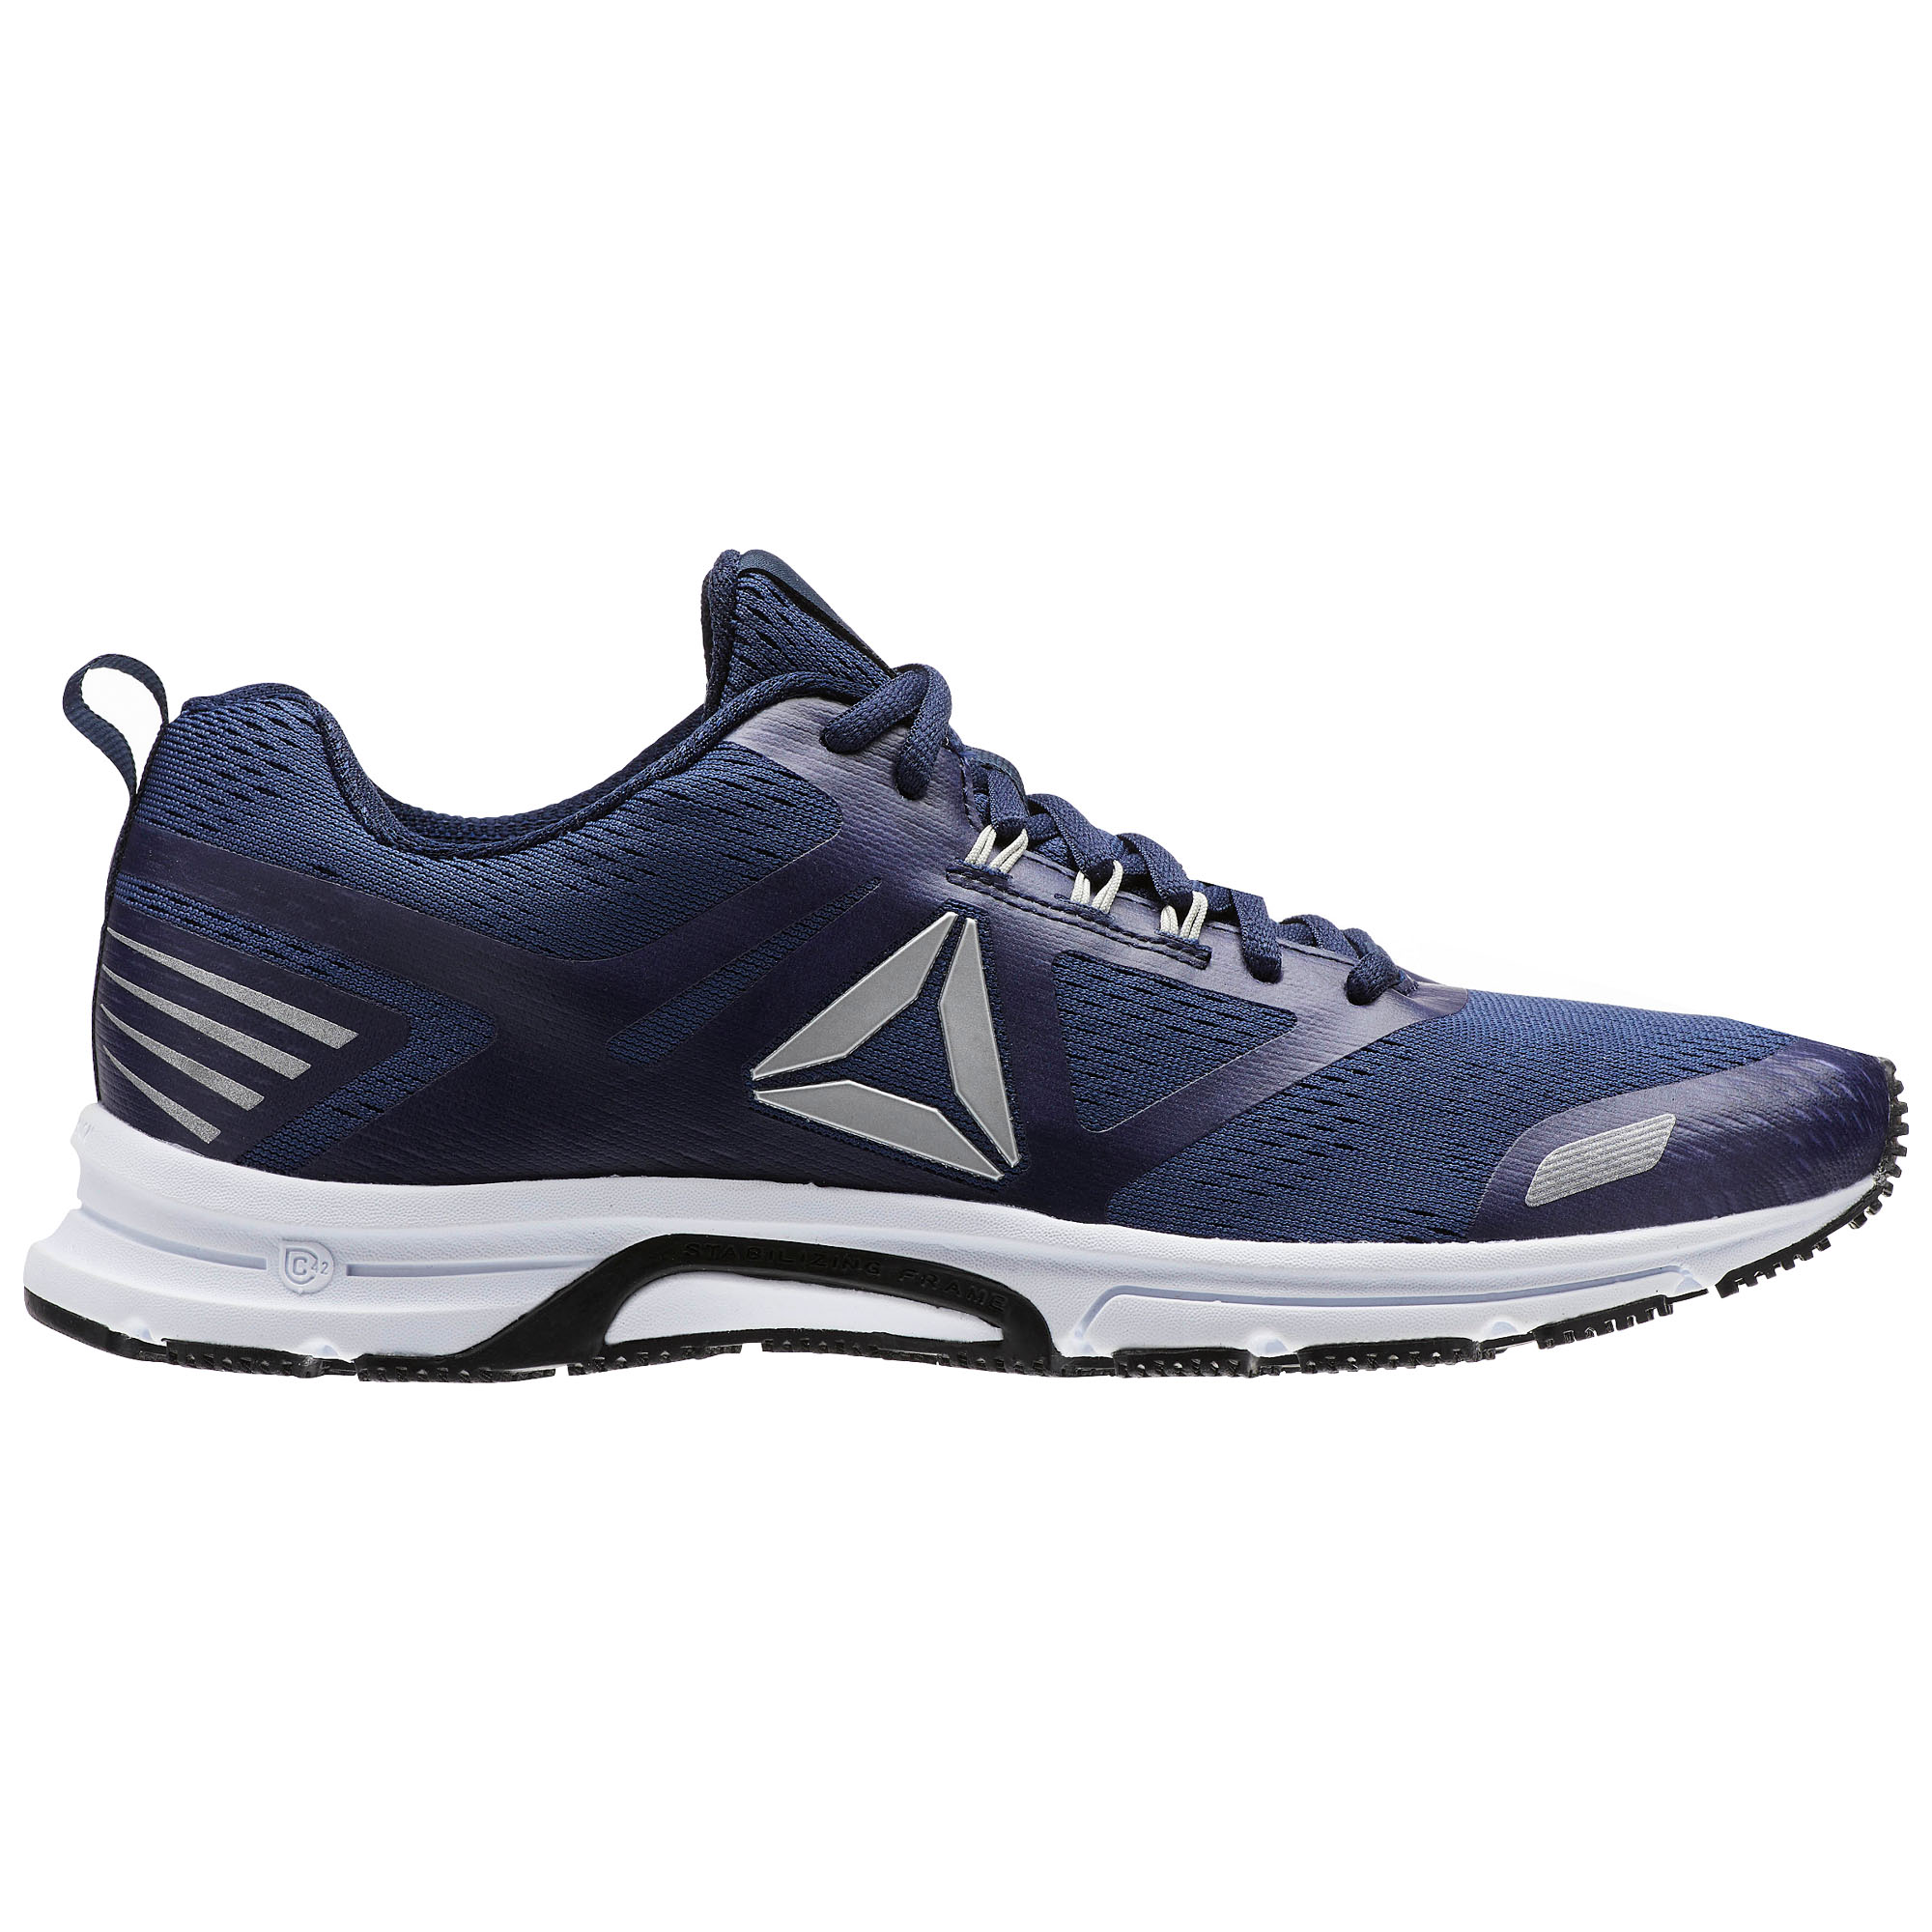 2e8ea7b3 Details about Reebok Ahary Runner Mens Running Fitness Training Trainer  Shoe Navy Blue